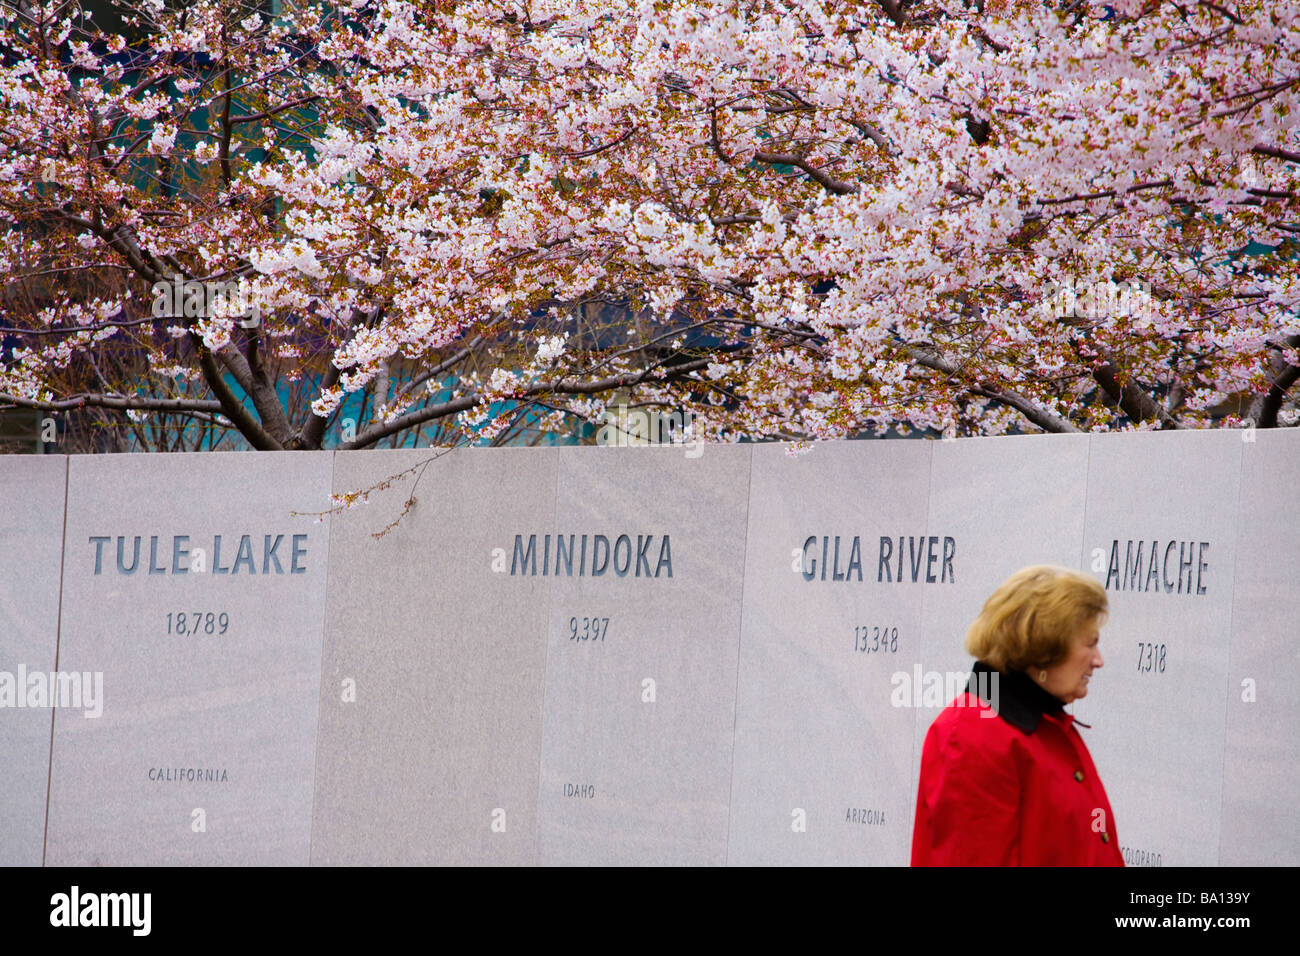 USA official apology for WW2 internment camps at Japanese American Memorial to Patriotism Washington DC - Stock Image